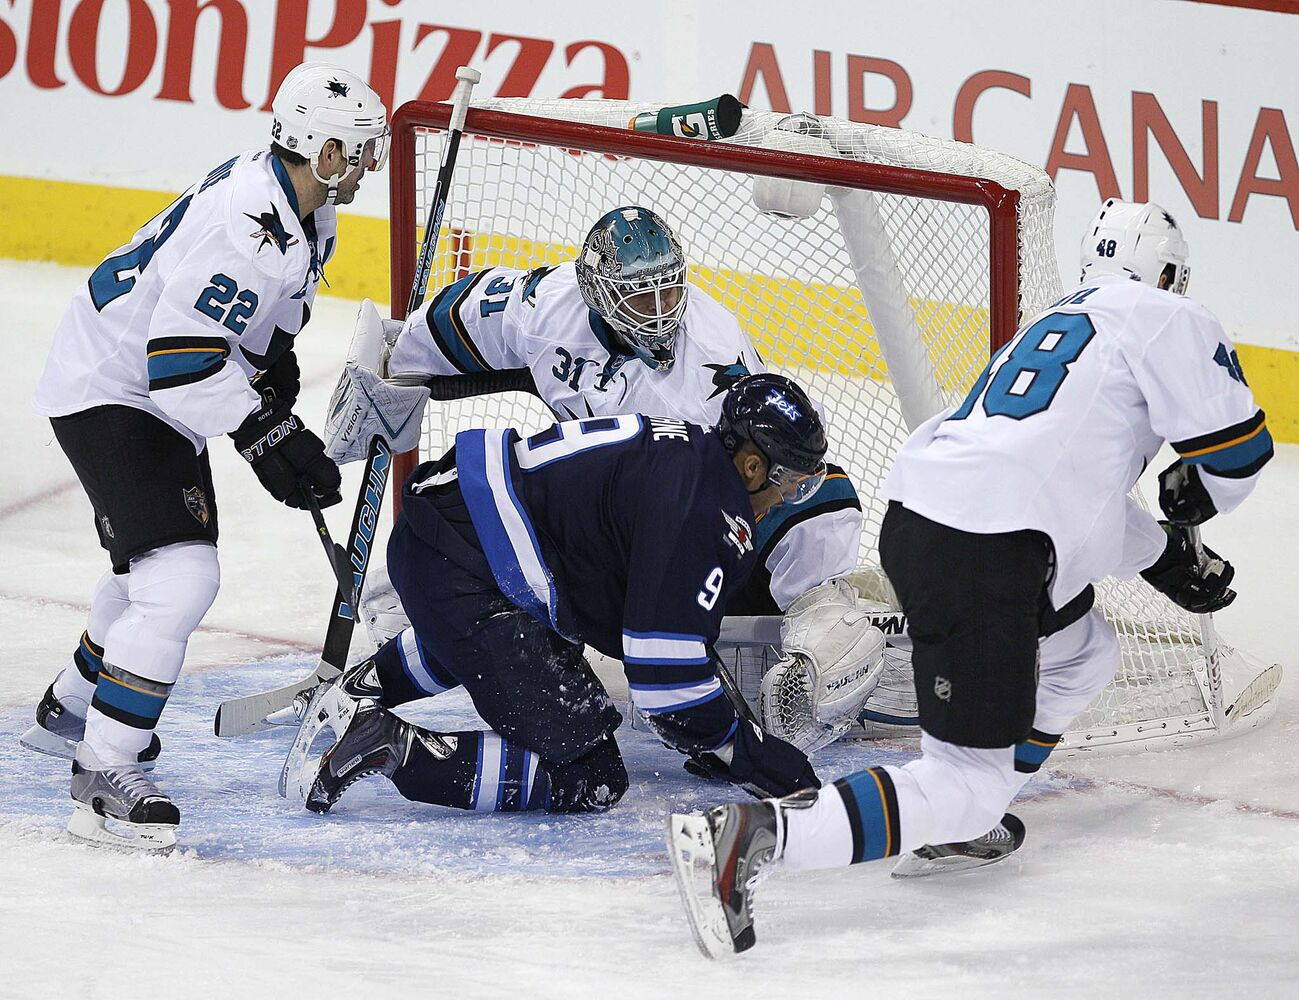 Winnipeg Jets' Evander Kane (9) plows into San Jose Sharks' goaltender Antti Niemi (31) during the first period. (JOHN WOODS / WINNIPEG FREE PRESS)